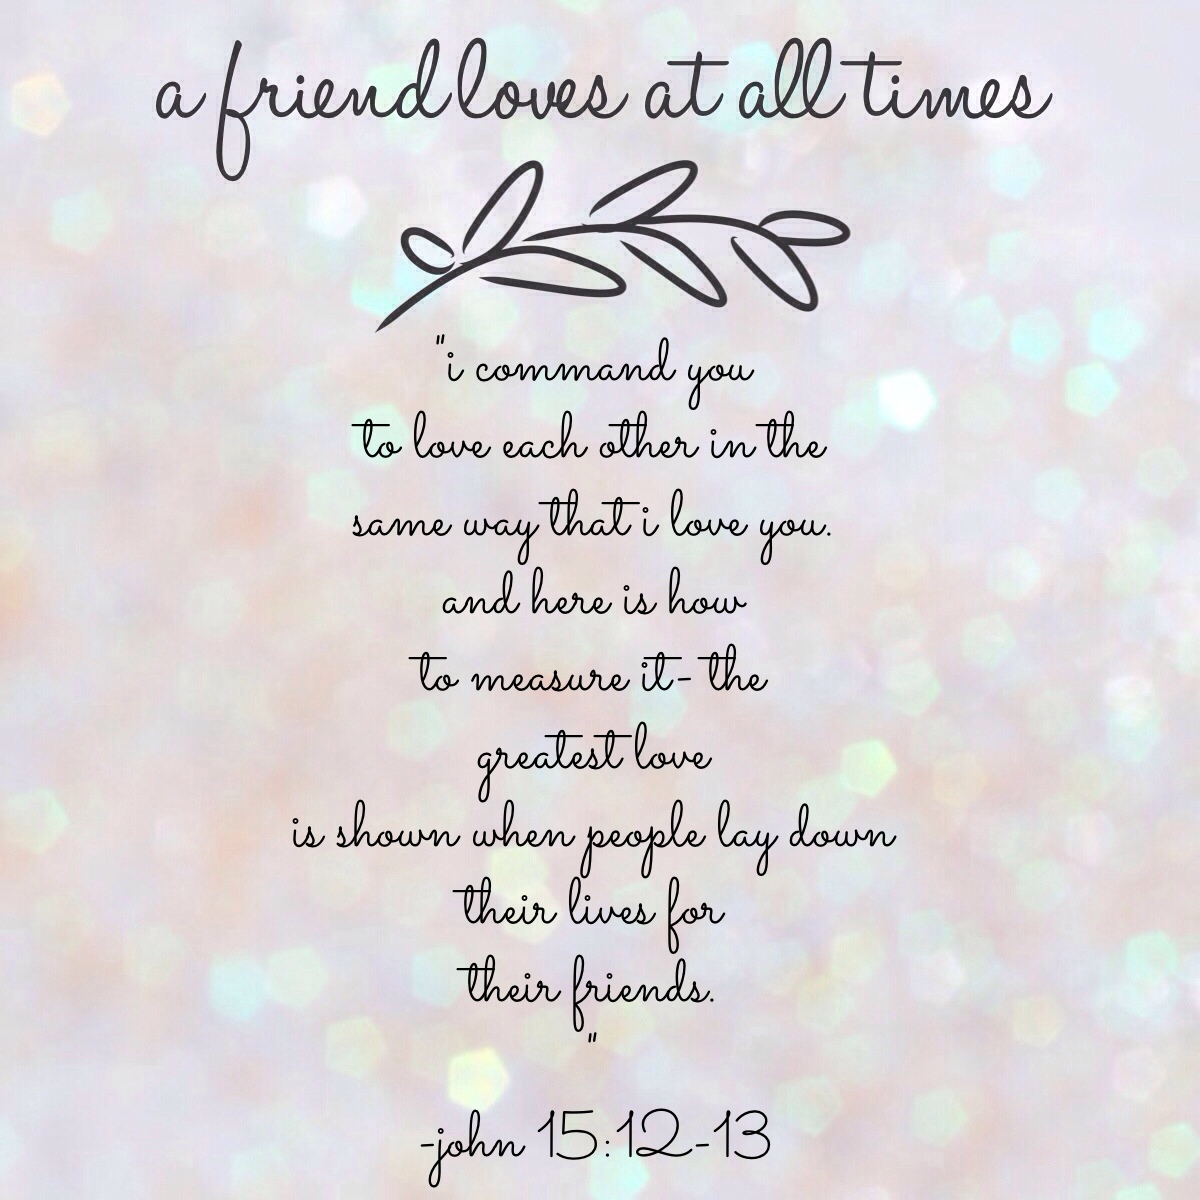 Bible Quotes About Friendship Tumblr : A friend loves at all times the art of domesticity